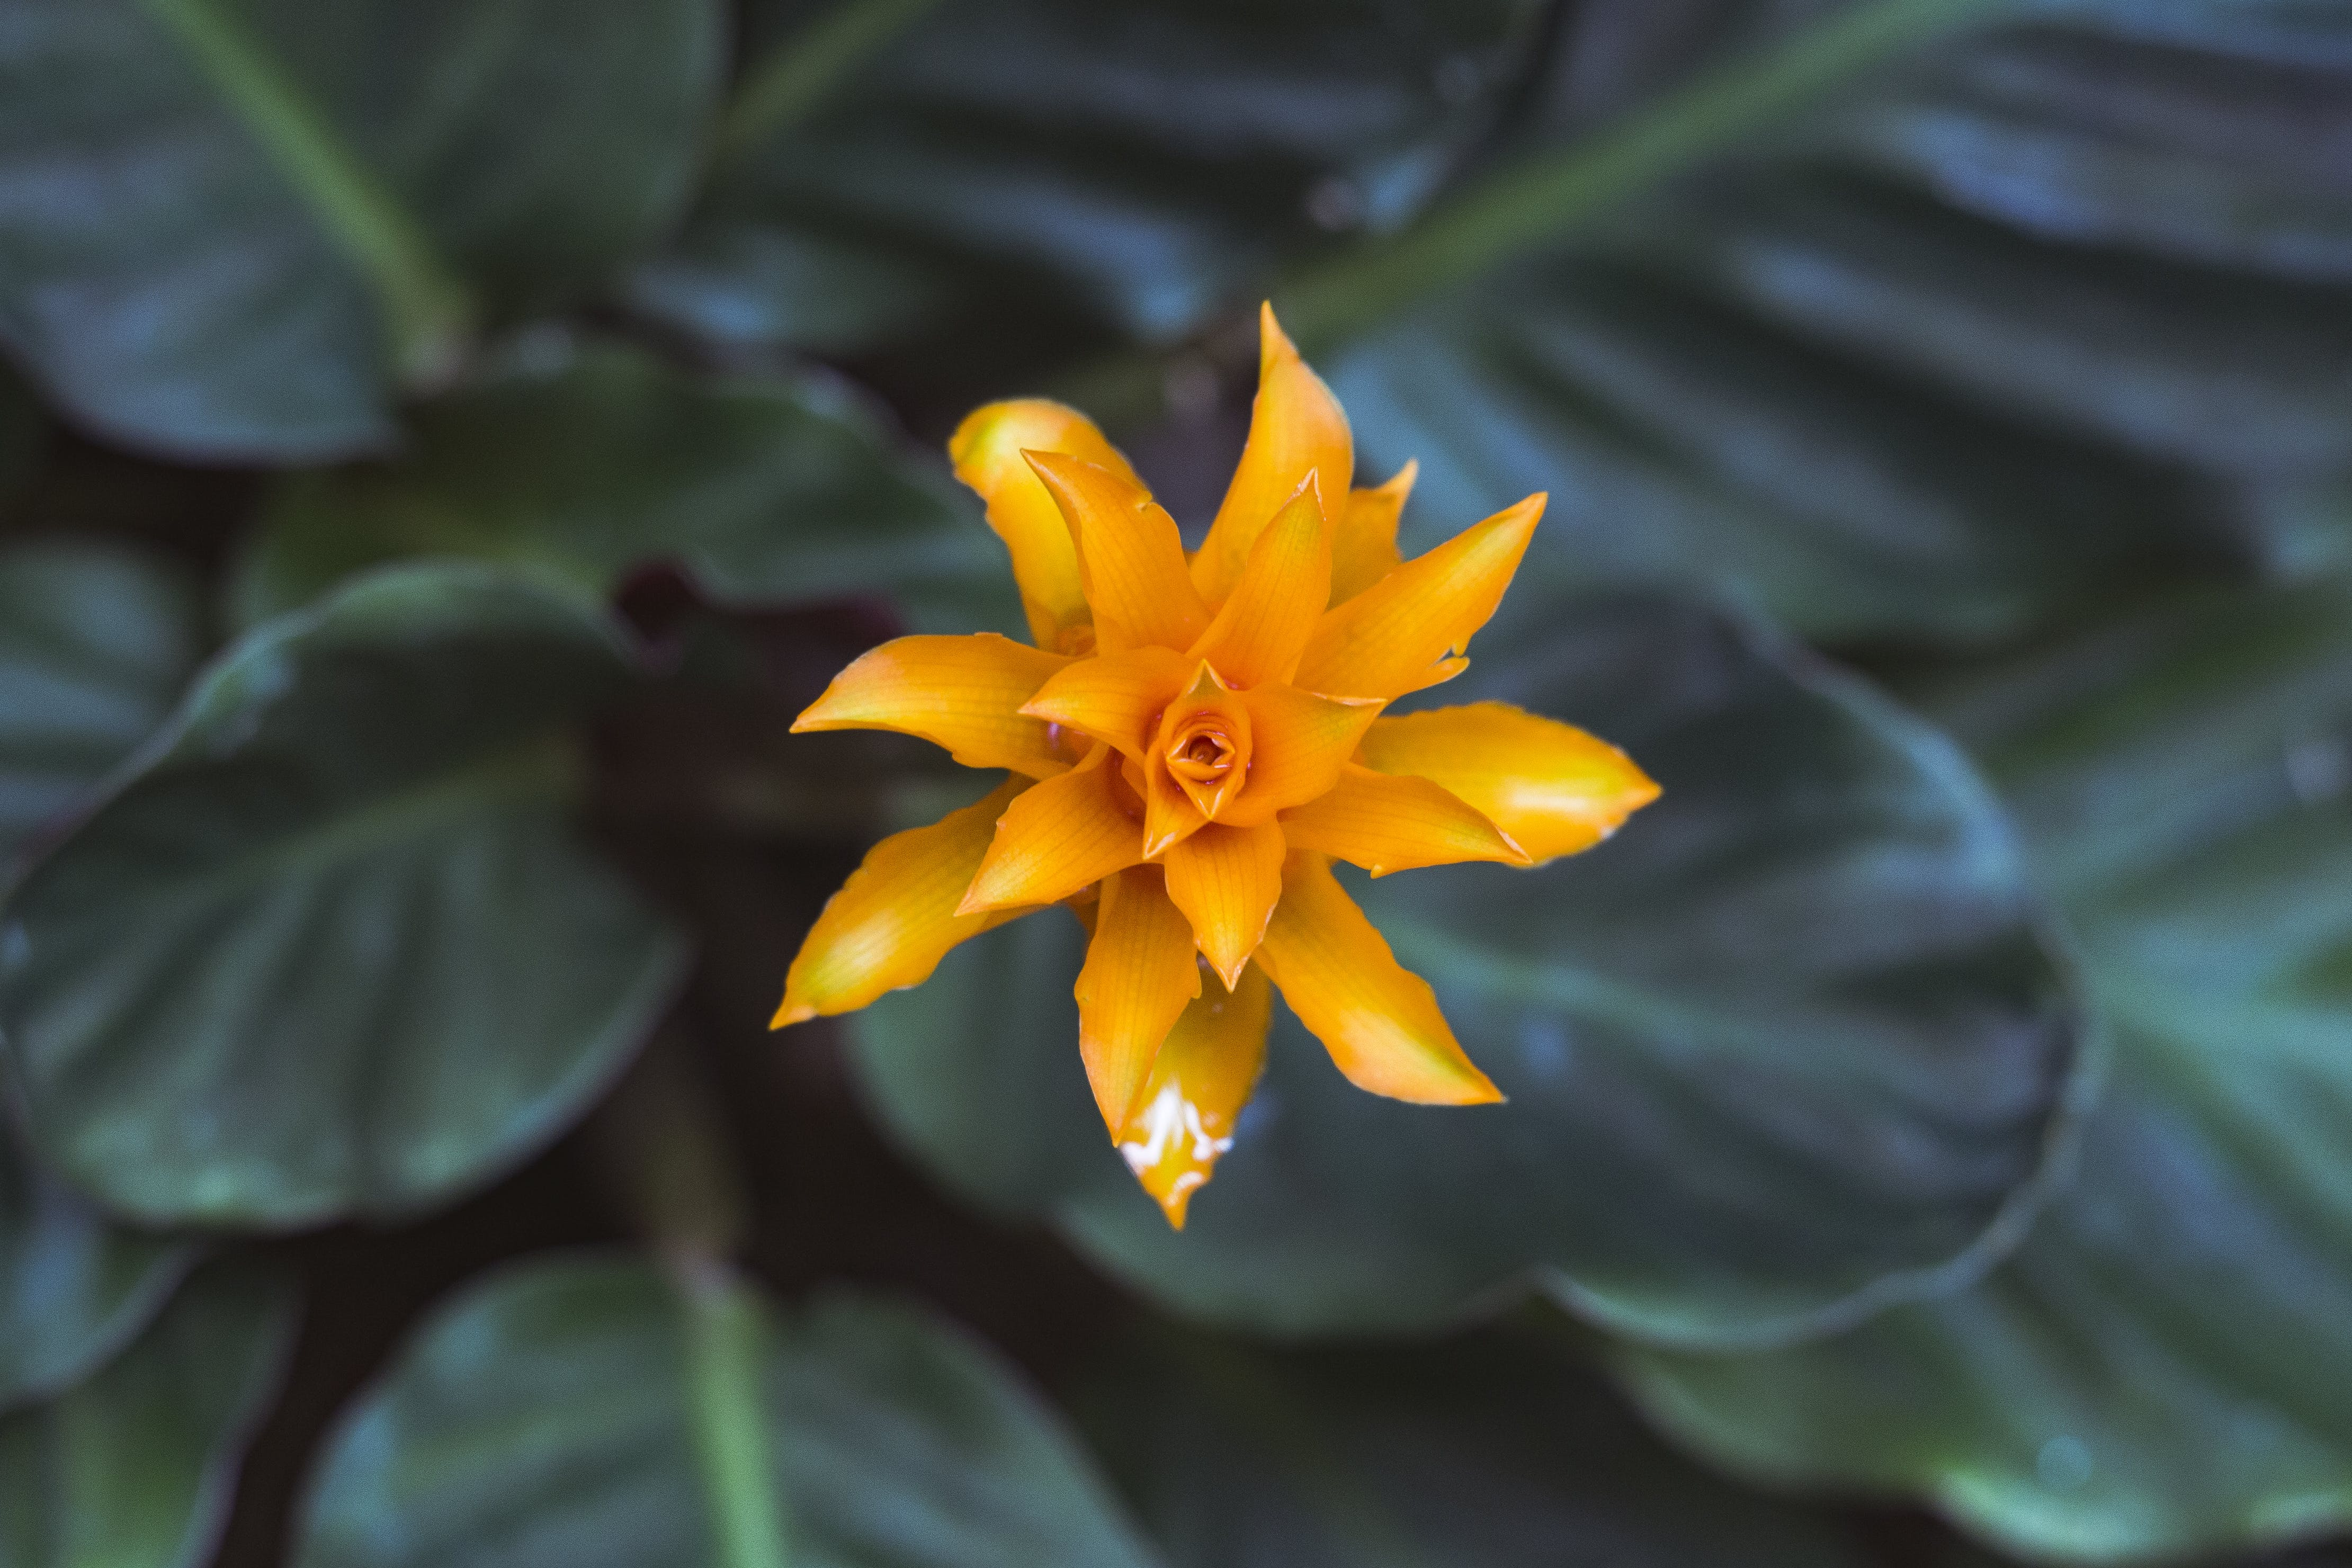 Orange Petaled Flower in Focus Photography